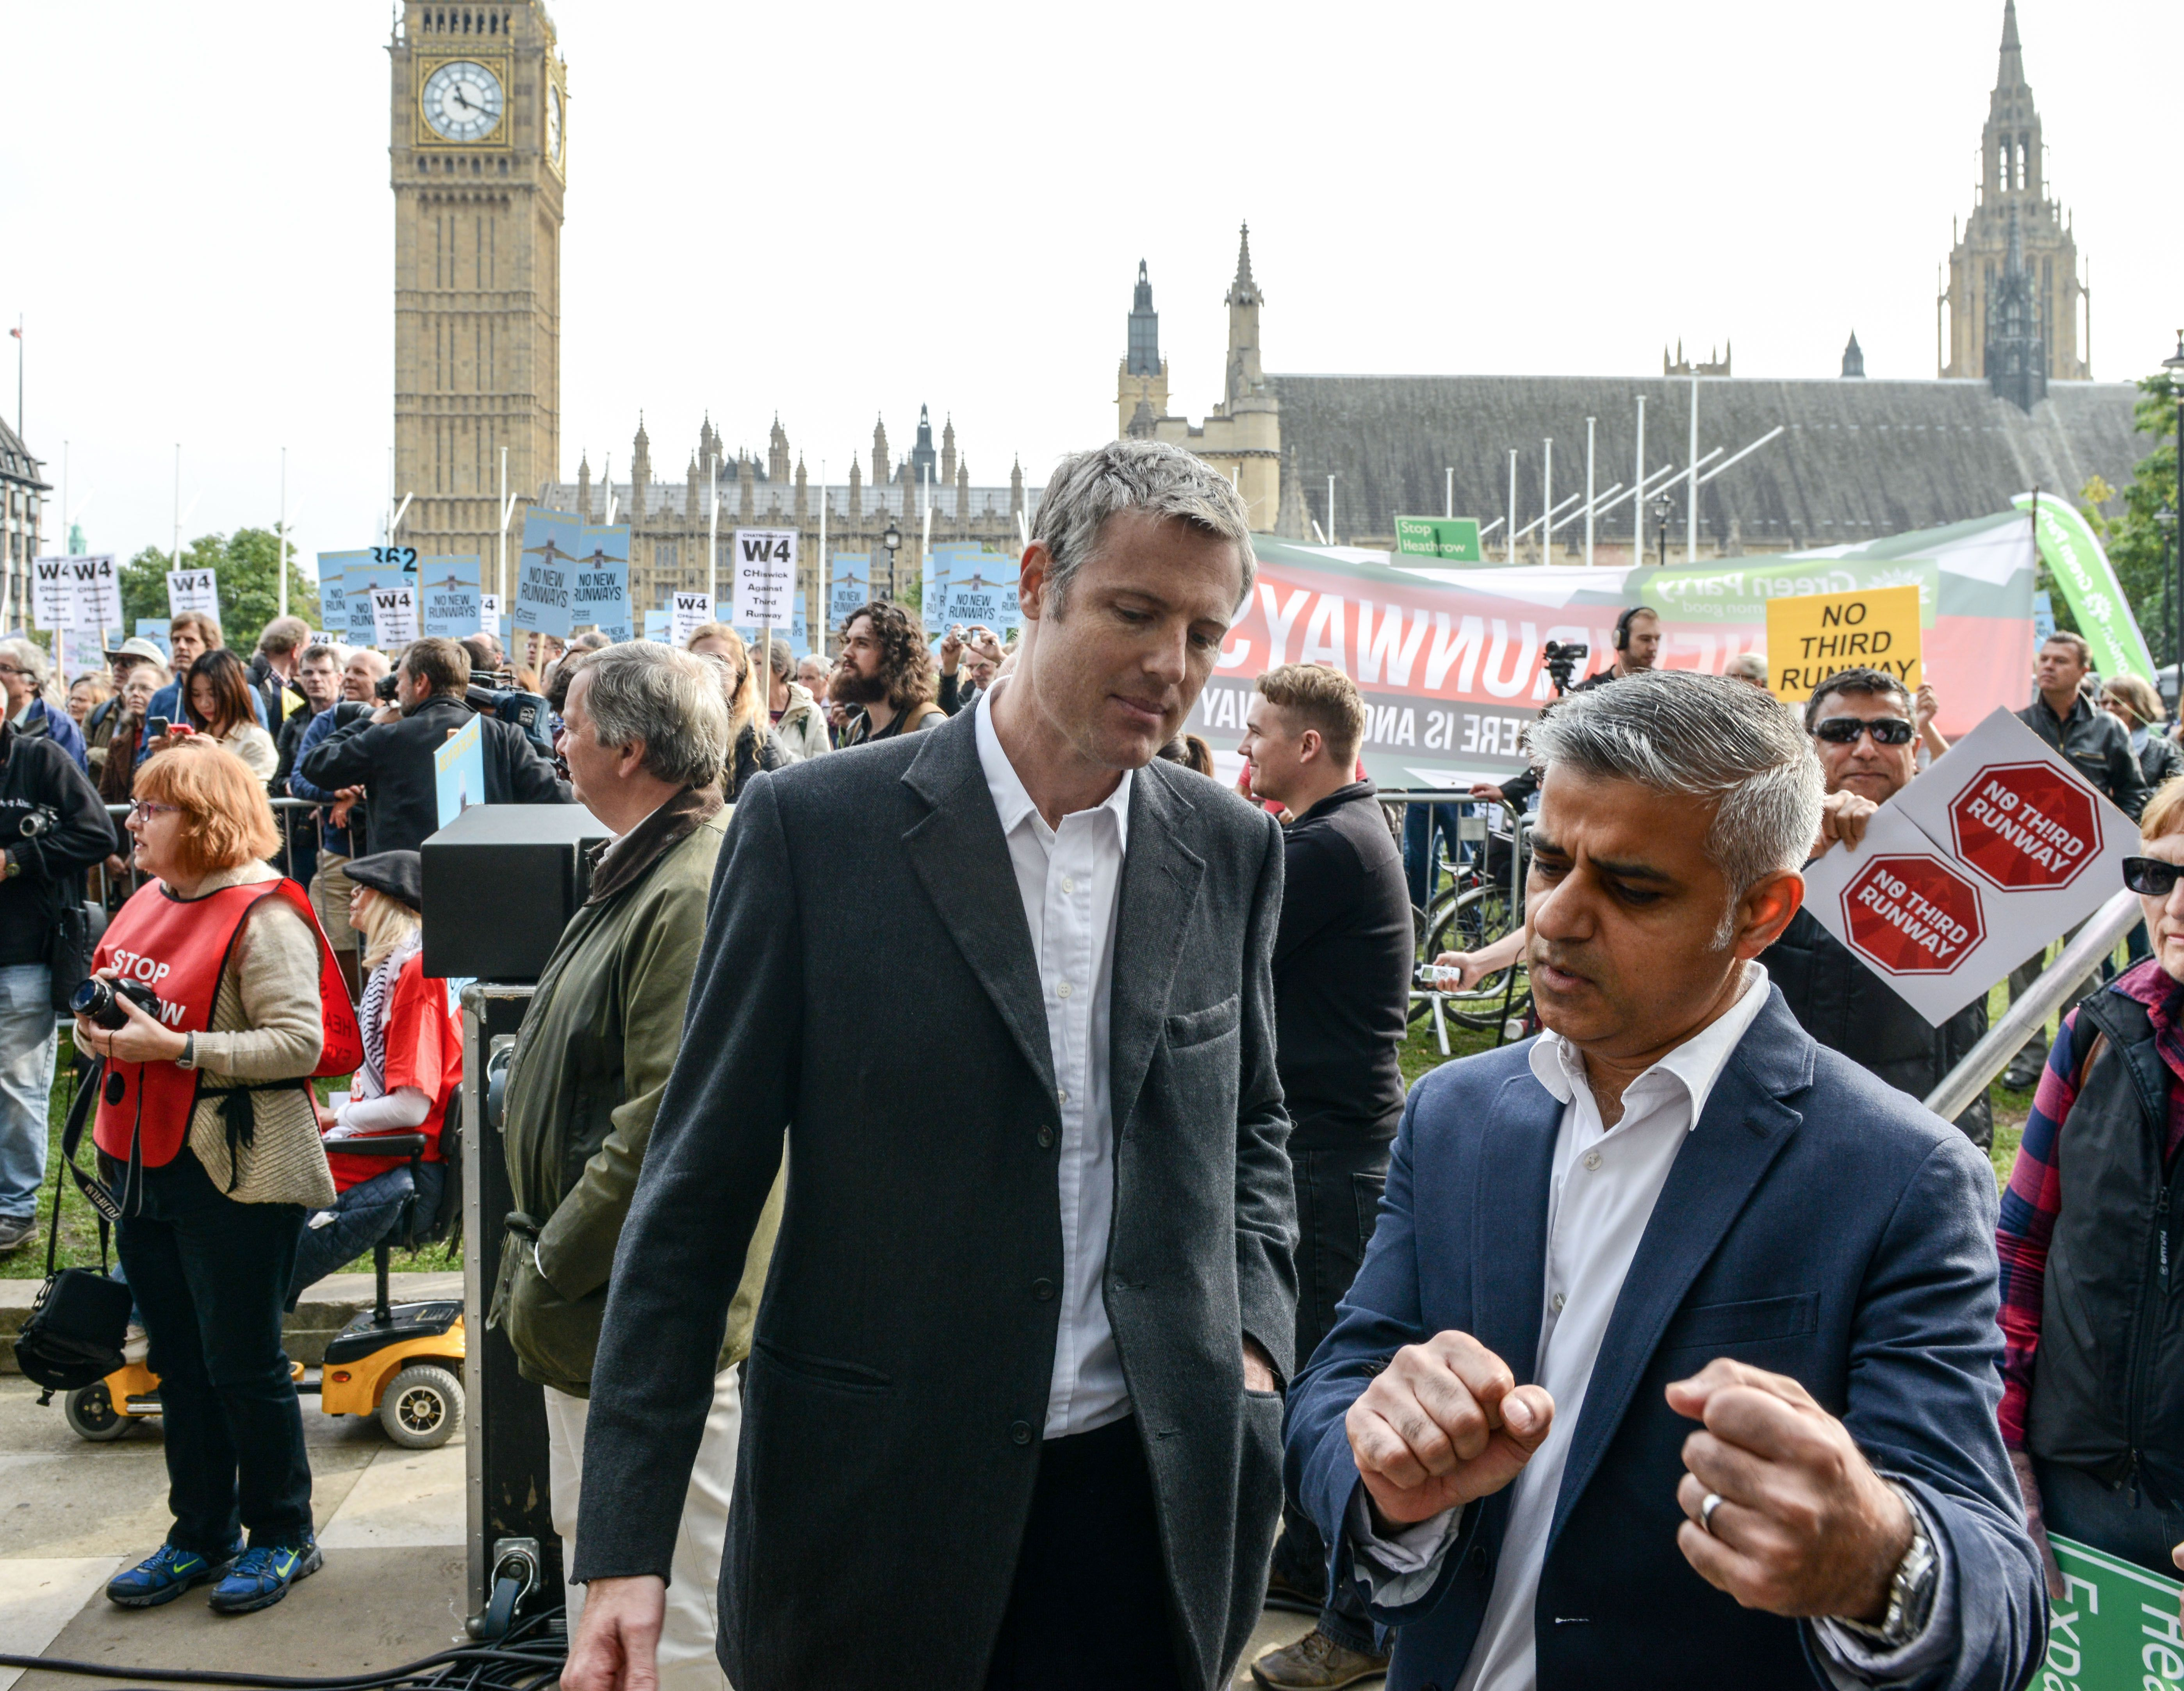 Candidates: Zac Goldsmith (left) or Sadiq Khan will be the next mayor of London.